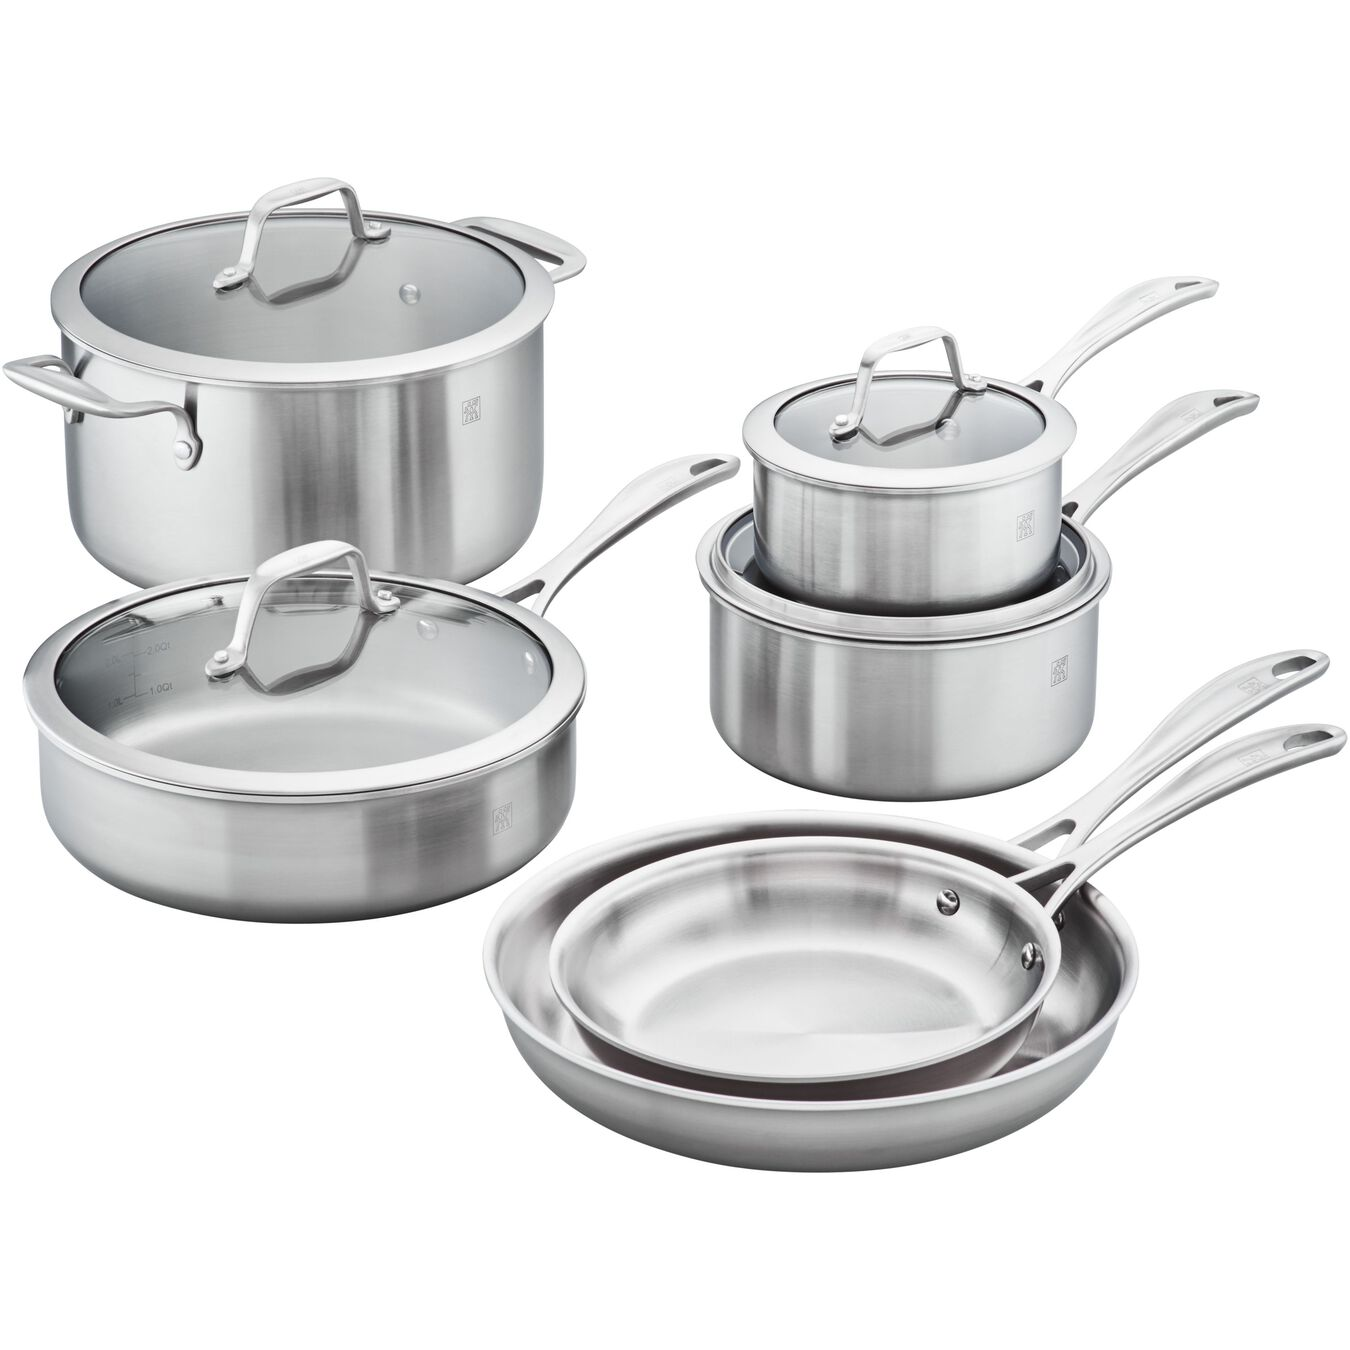 Ceramic, 10-pc, stainless steel, Cookware Set,,large 1